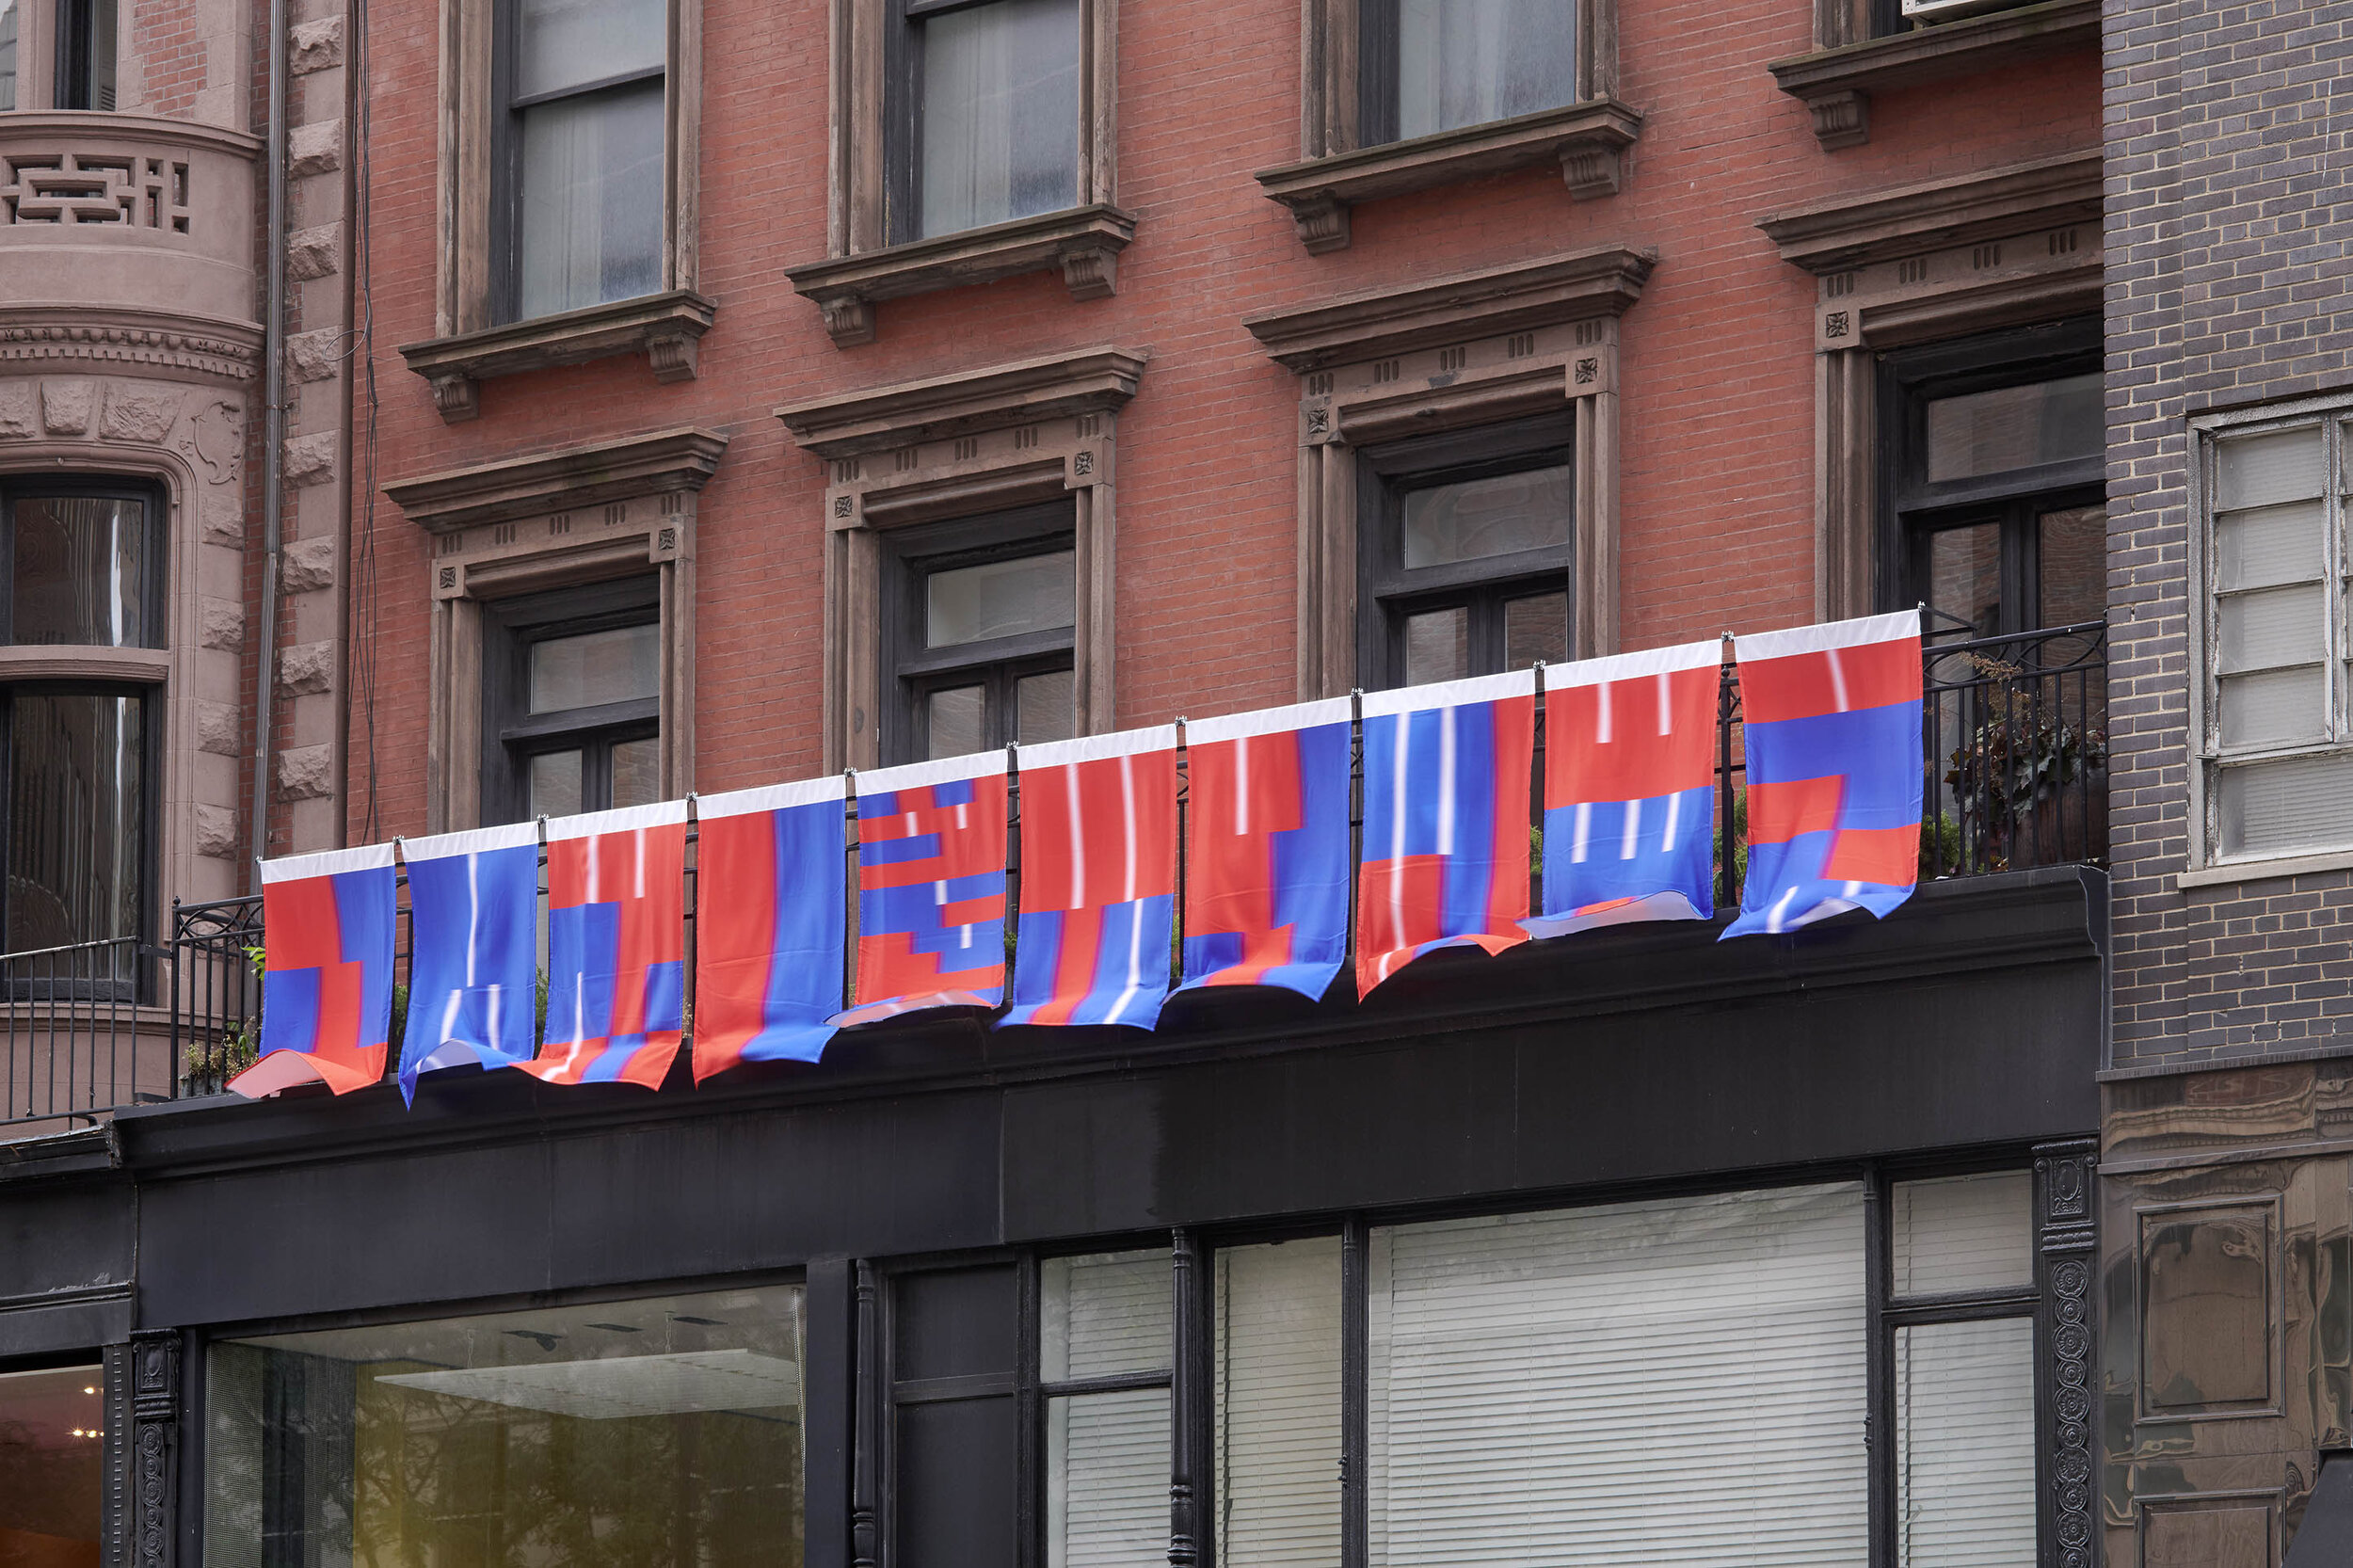 Photo documentation of outdoor installation at Helwaser Gallery, New York, showing 'Art is only a continuation of war by other means (flags)', 2019. Image courtesy of Helwaser Gallery. © Boedi Widjaja. Photography by Phoebe d'Heurle.